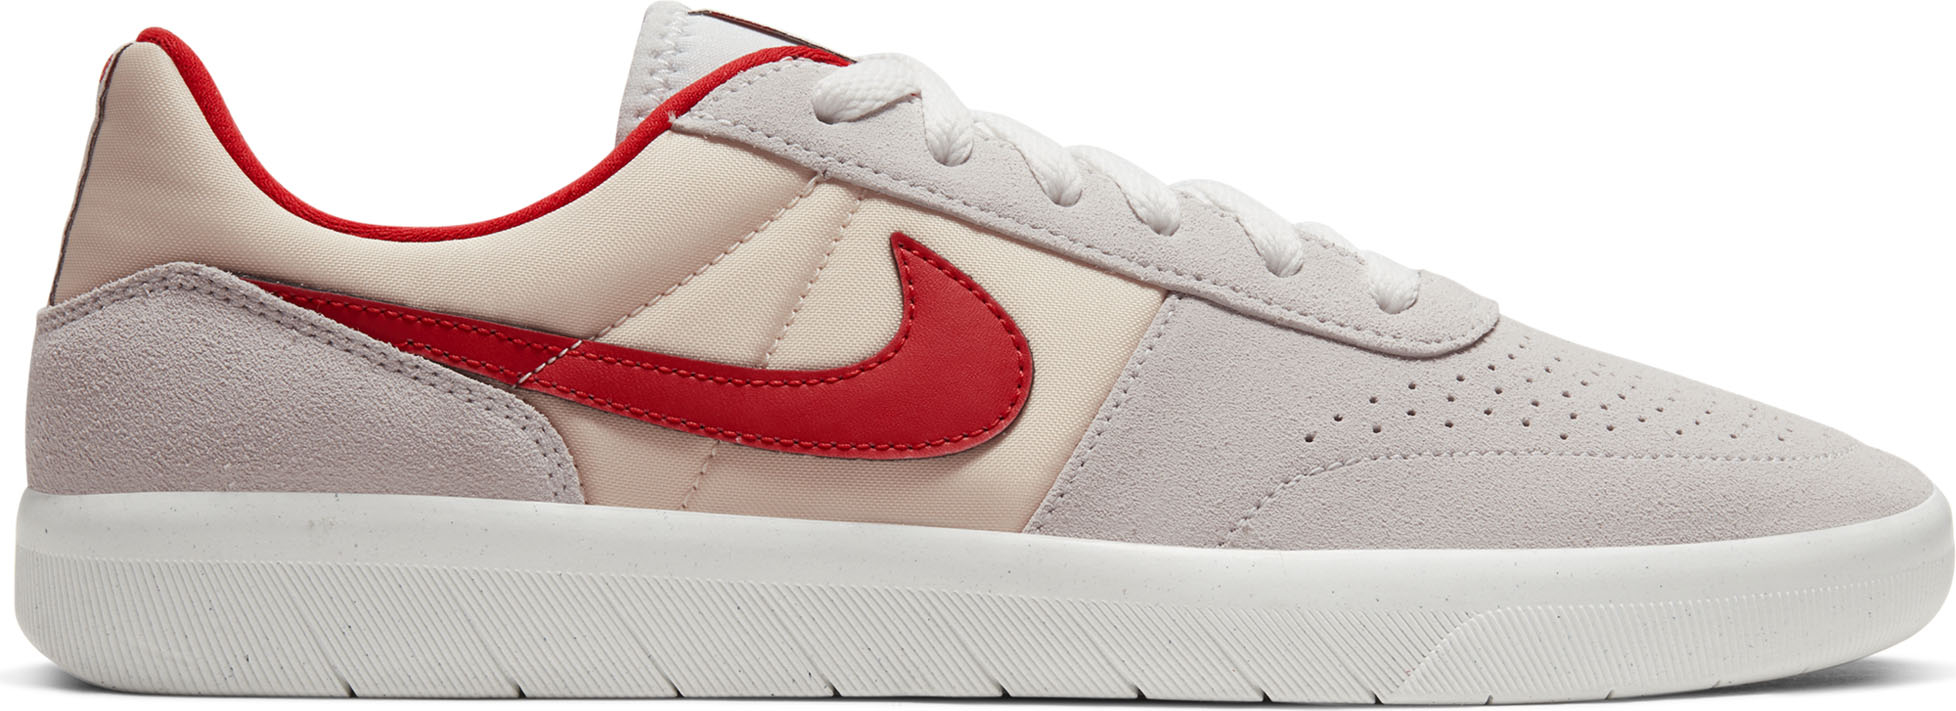 extraterrestre construcción Modernizar  Nike Skateboarding Nike Sb Team Classic Photon Dust/University Red-Light  Cream : Women's trainers : Snowleader